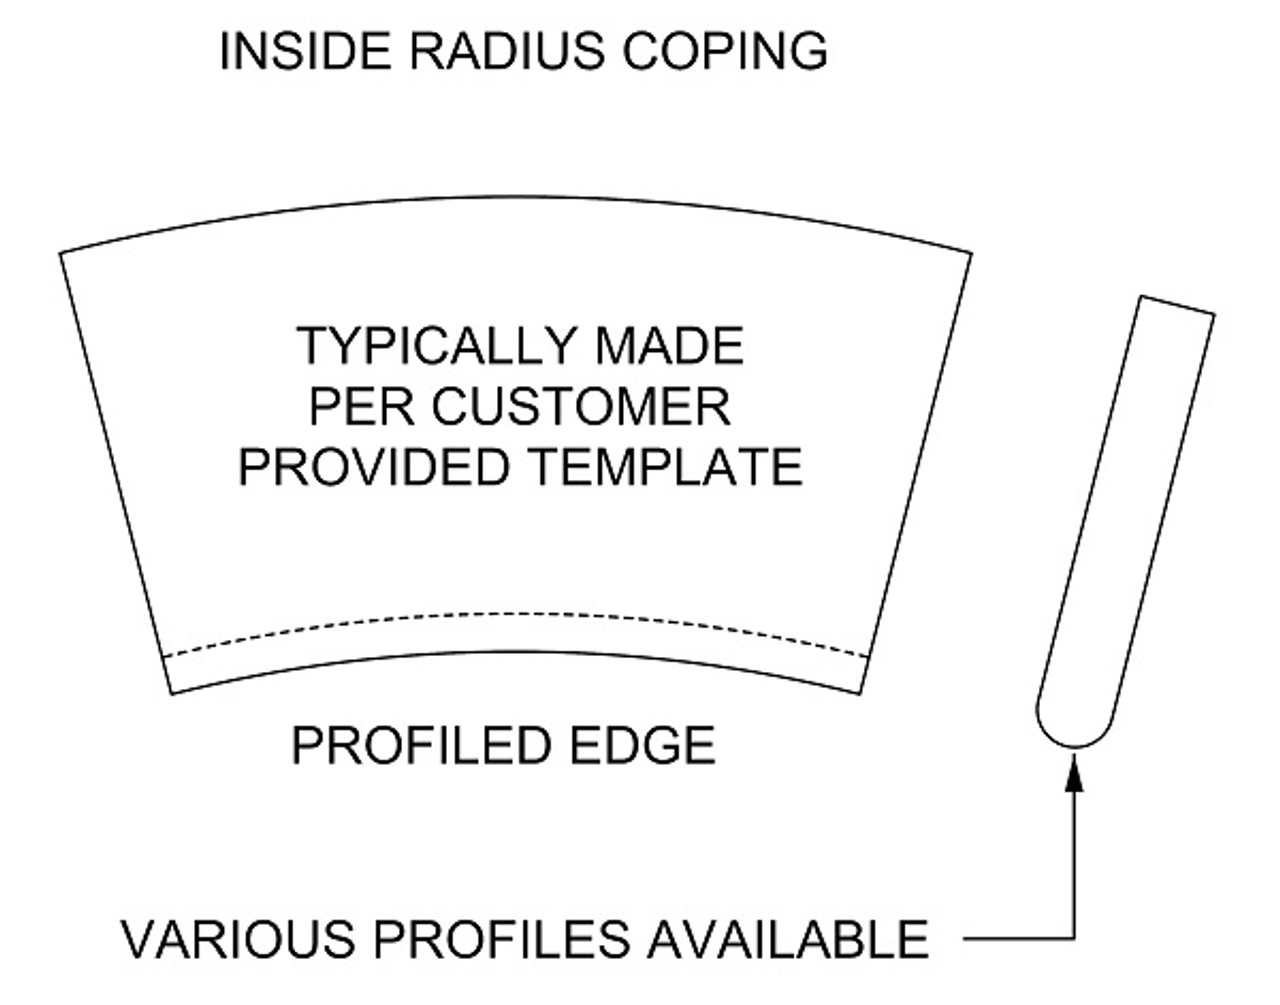 Inside radius swimming pool, spa or wall coping shape drawing. Available in limestone, bluestone, sandstone, granite, marble, travertine, made in USA, shipped nationwide.